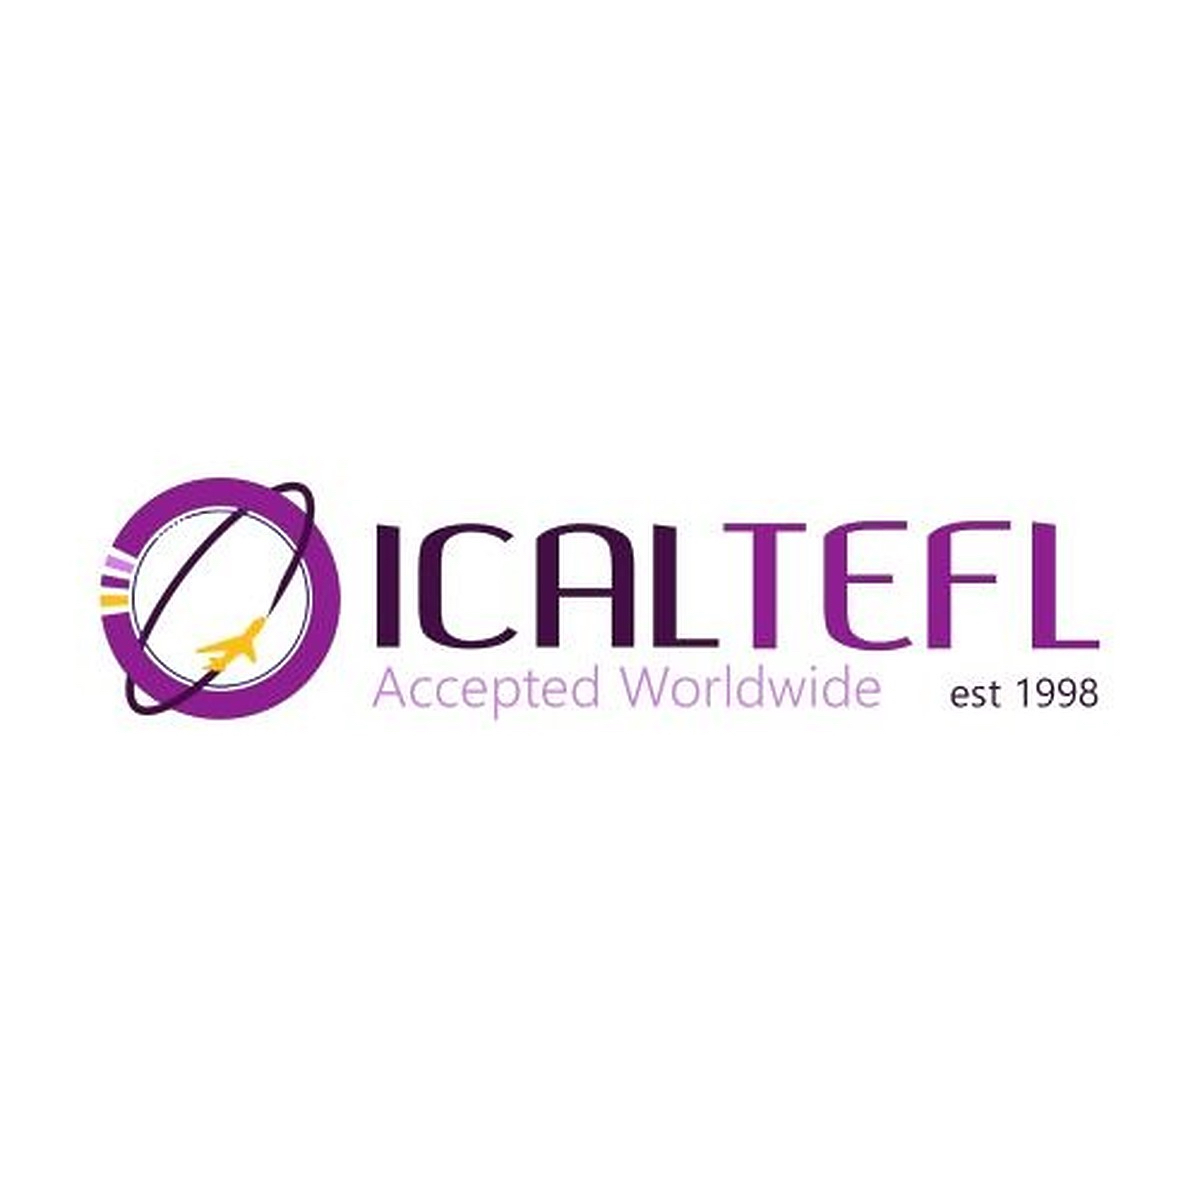 ical-tefl-tesol-reviews-logo